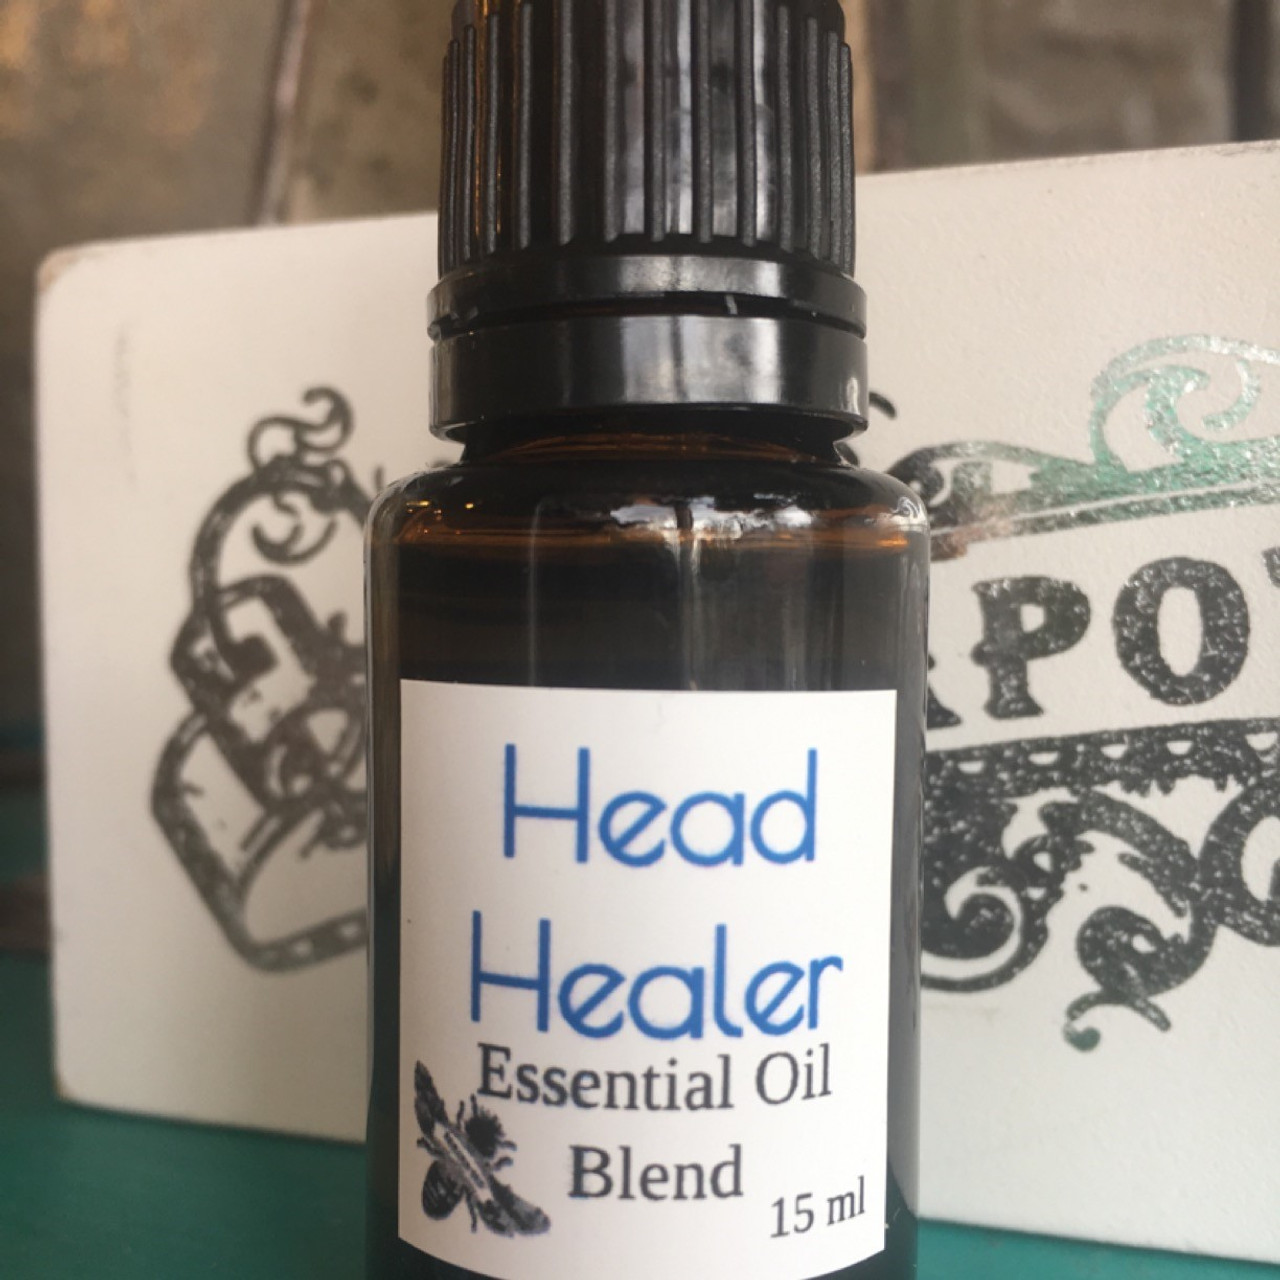 Head Healer Essential Oil Blend: Headaches, Migraines, Exhaustion